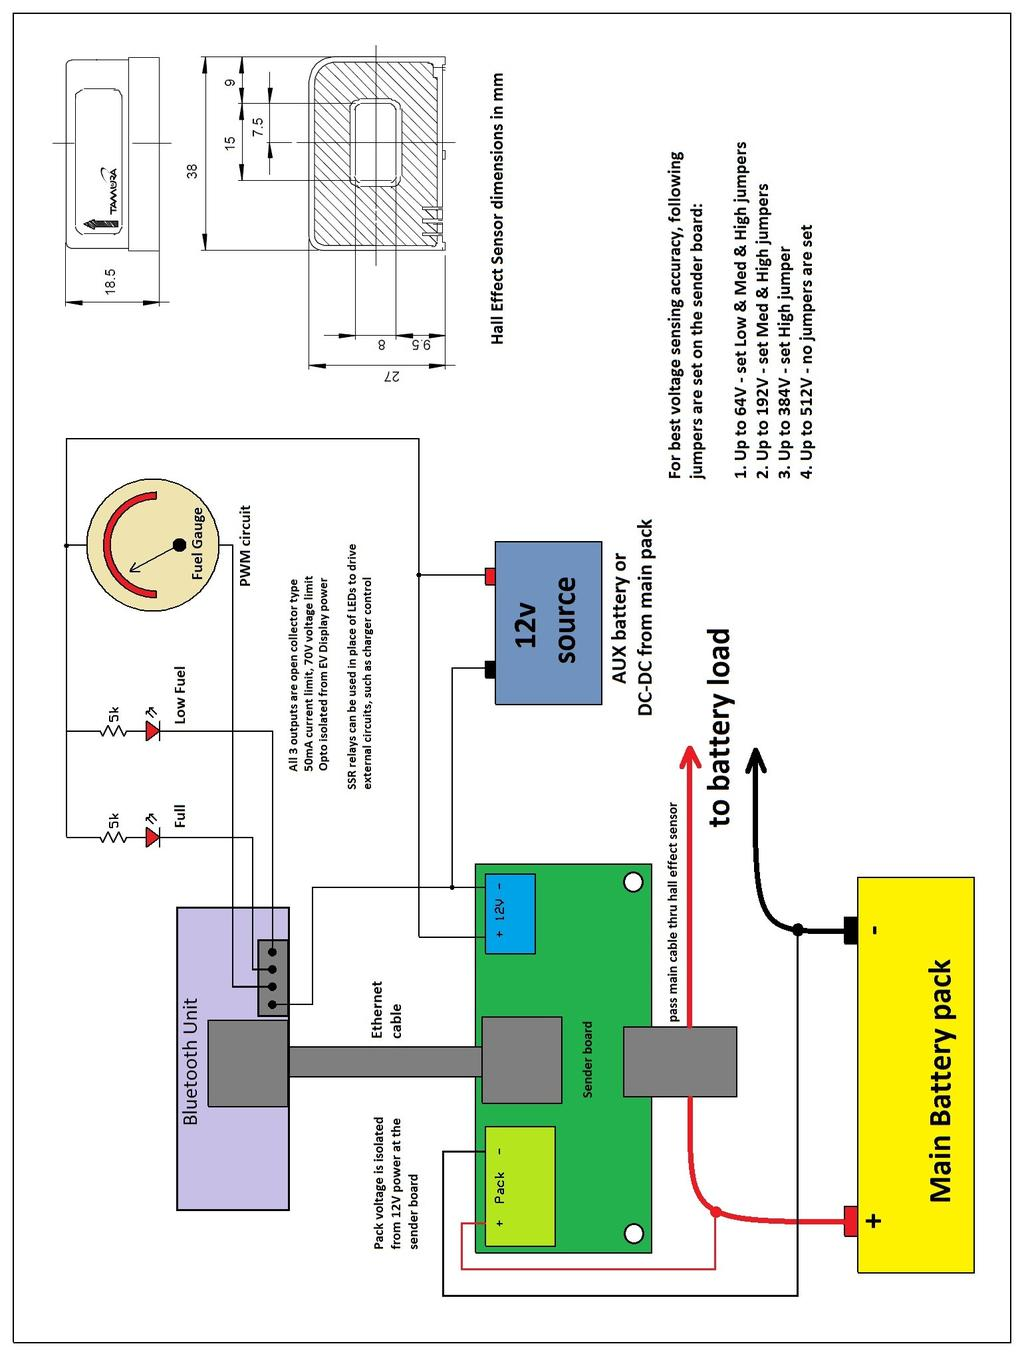 Emw Ev Android Dashboard User Guide V11 As Of Feb 11 2012 Pdf Positive 512v Pulse Should Be Applied To This Input In Order Appendix A